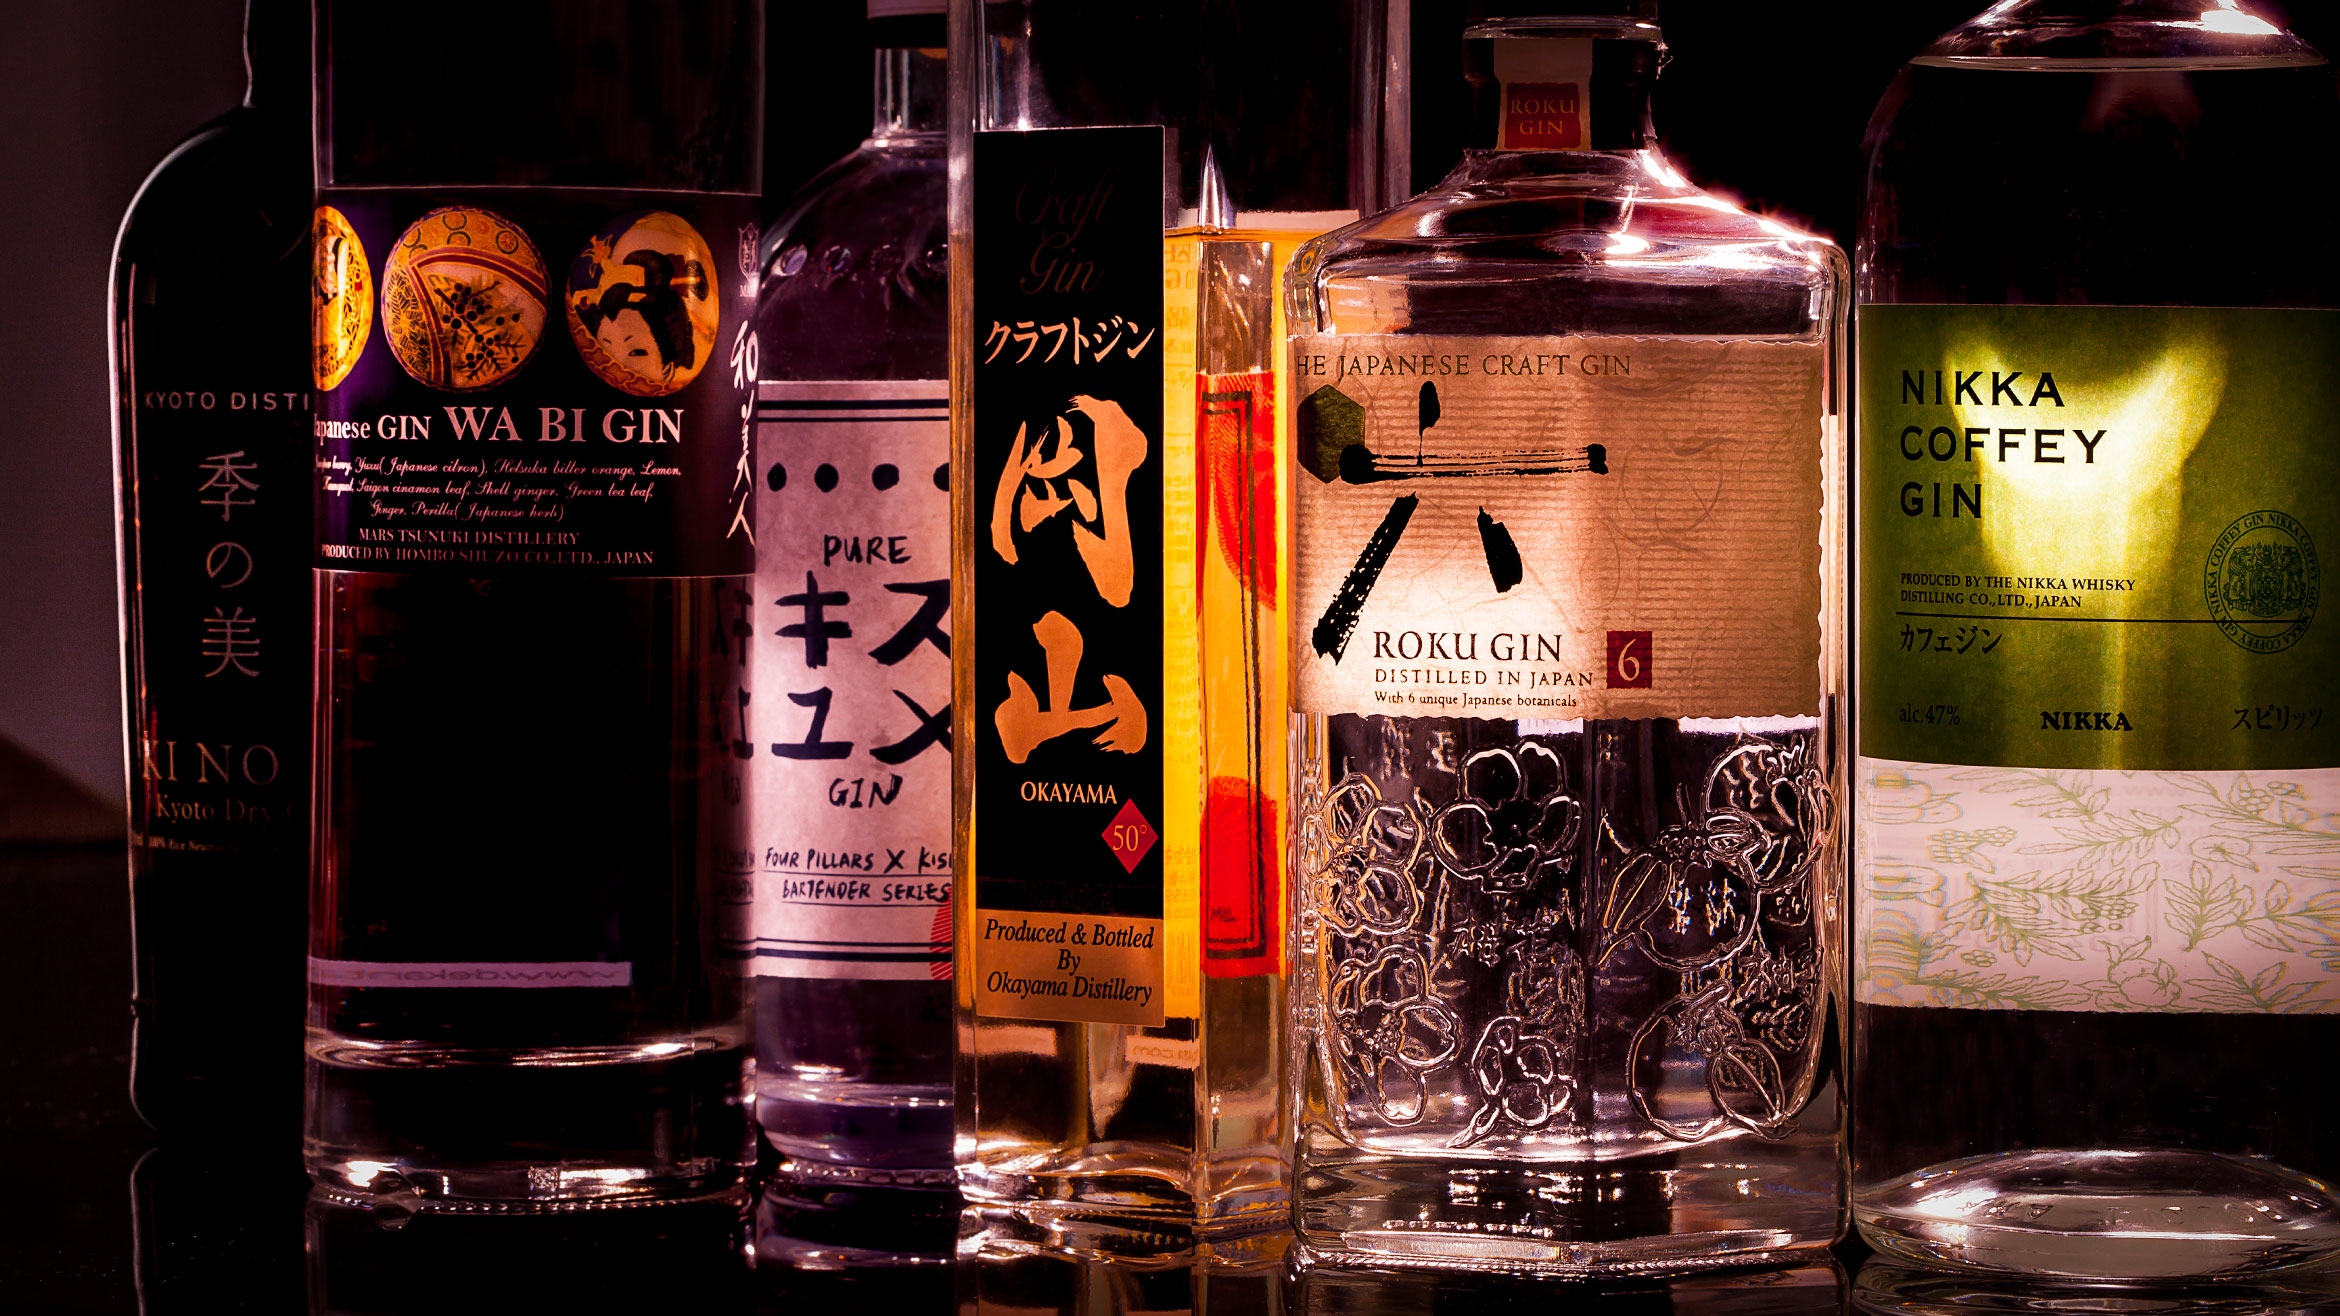 Article-Best-Japanese-Gin-Nikka-Coffey-Roku-Pure.jpg